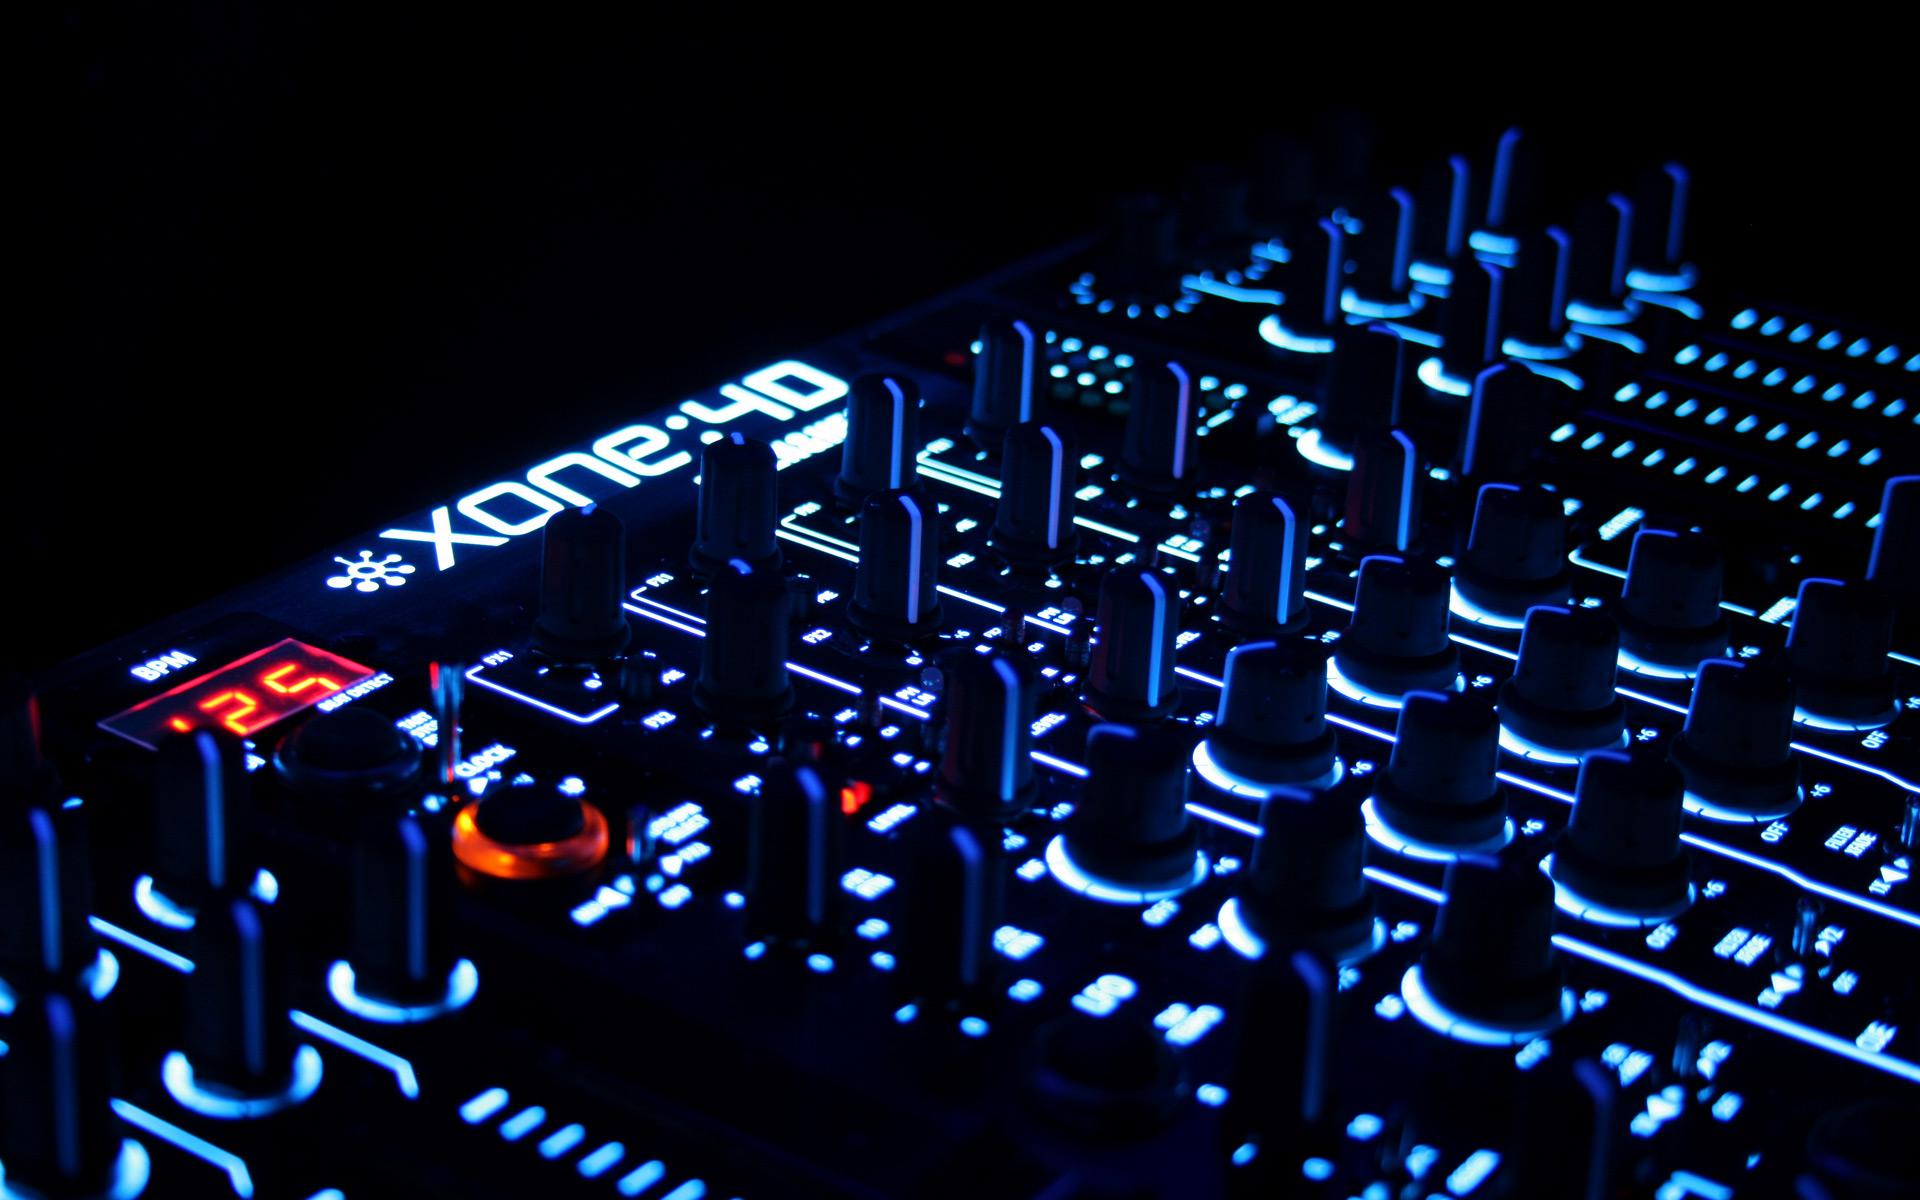 DJ yourself a blissful blend of sounds